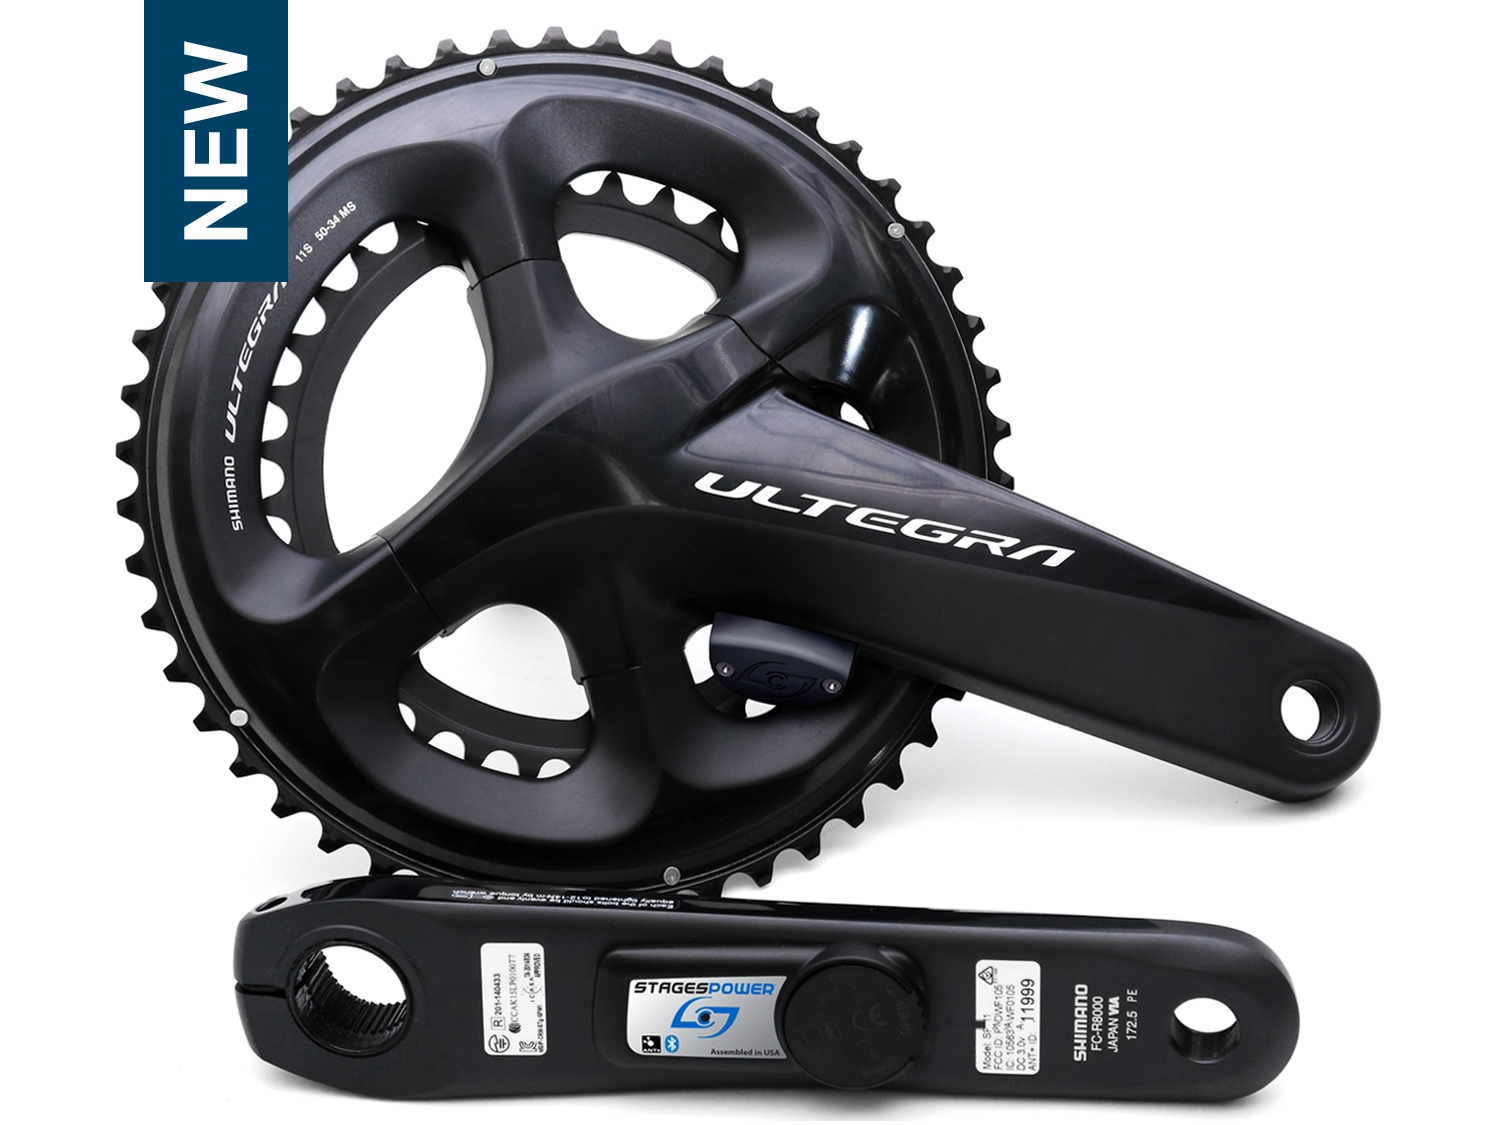 Stages Power Meter Ultegra R8000LR | Wattmålere